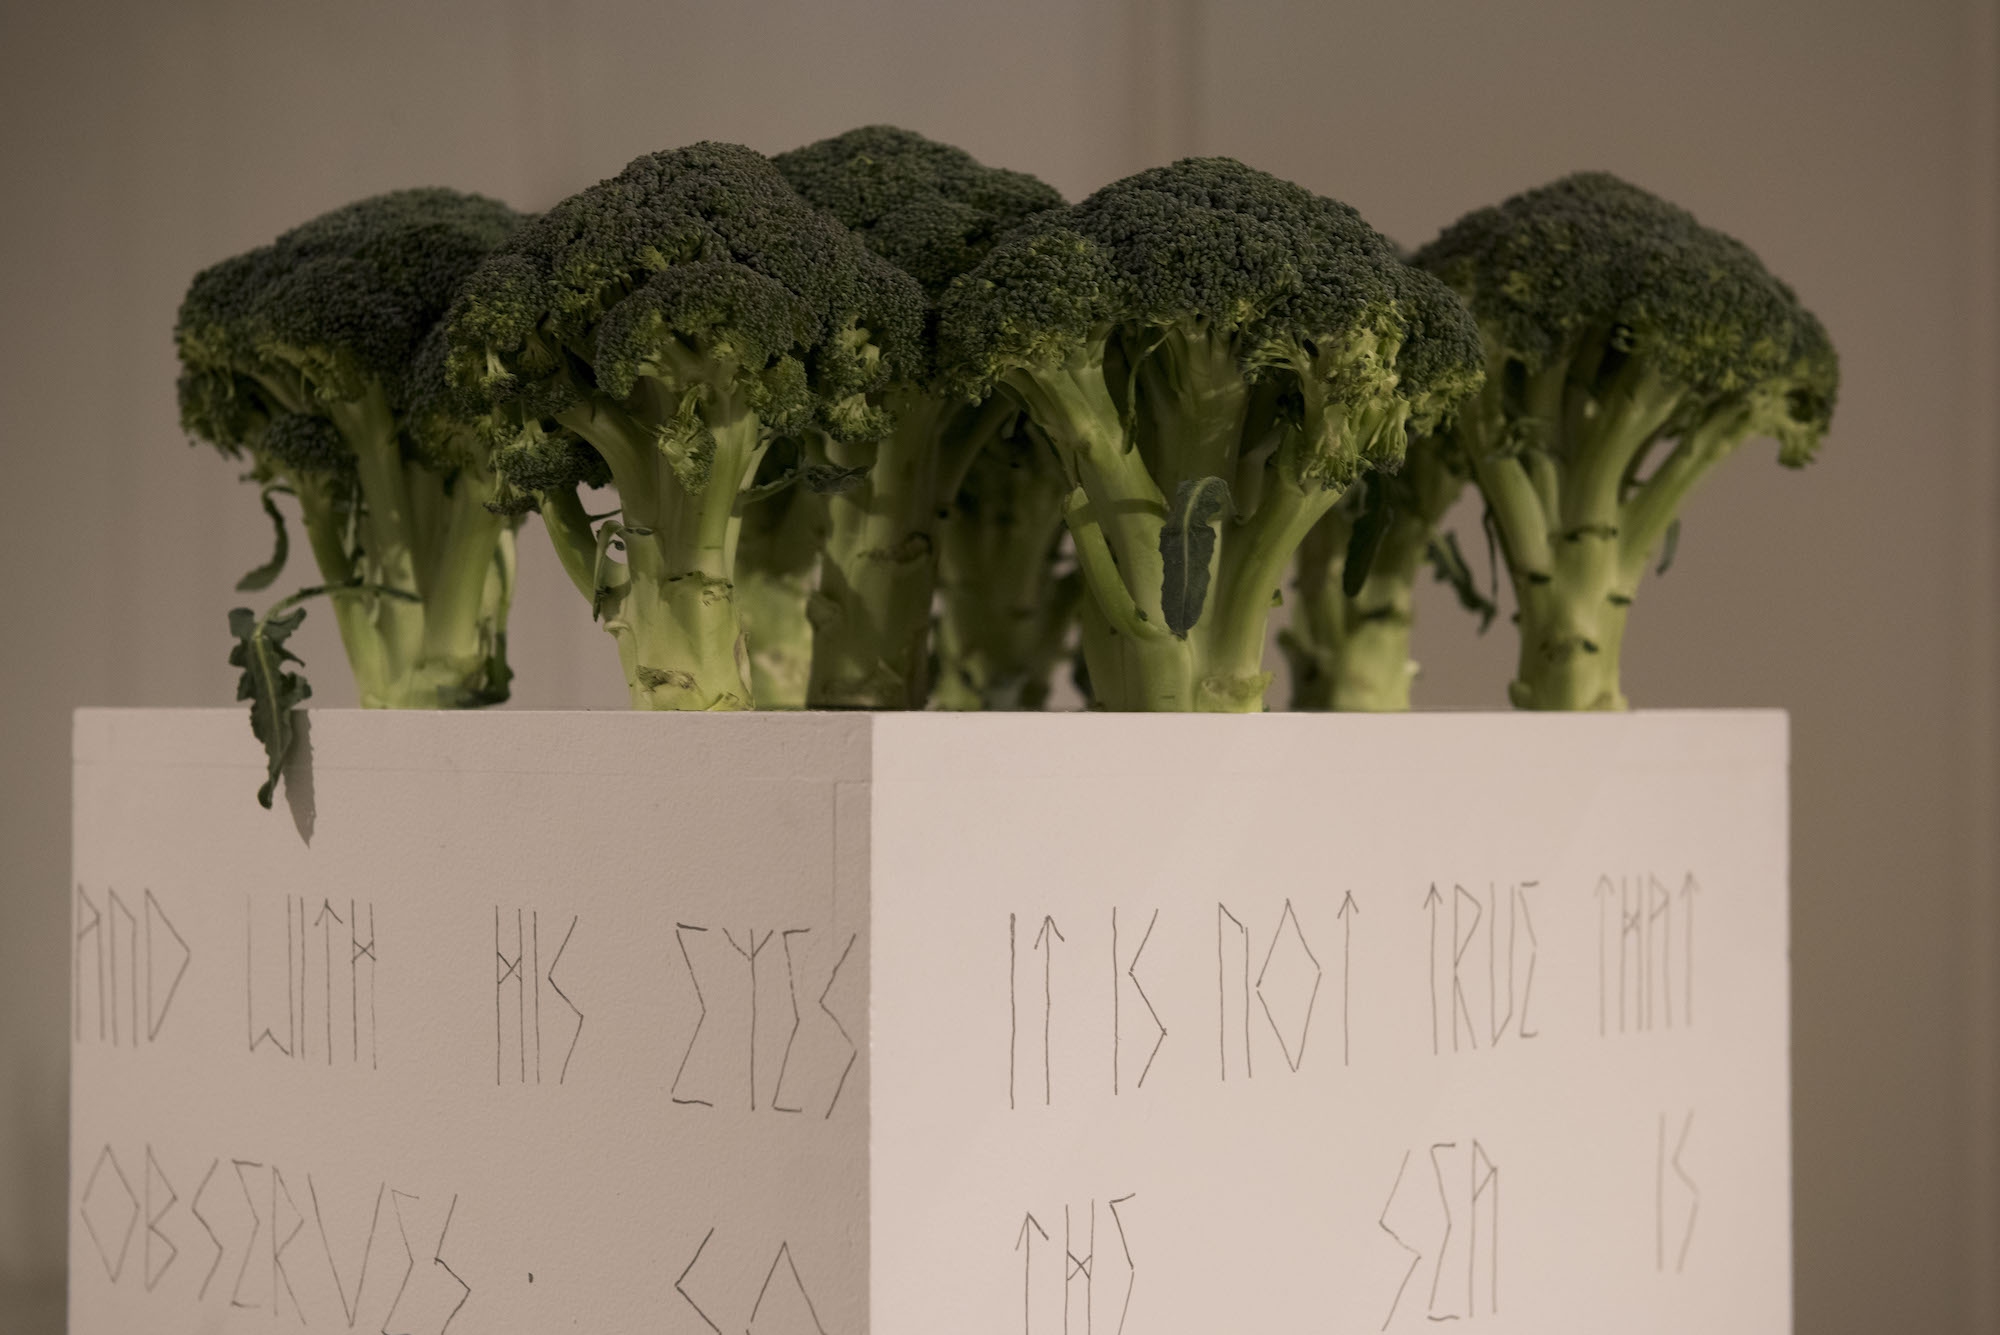 Storied Landscape  Artist Typeface on Plinth (Acrylic), Broccoli Dimensions and Text Variable 2017